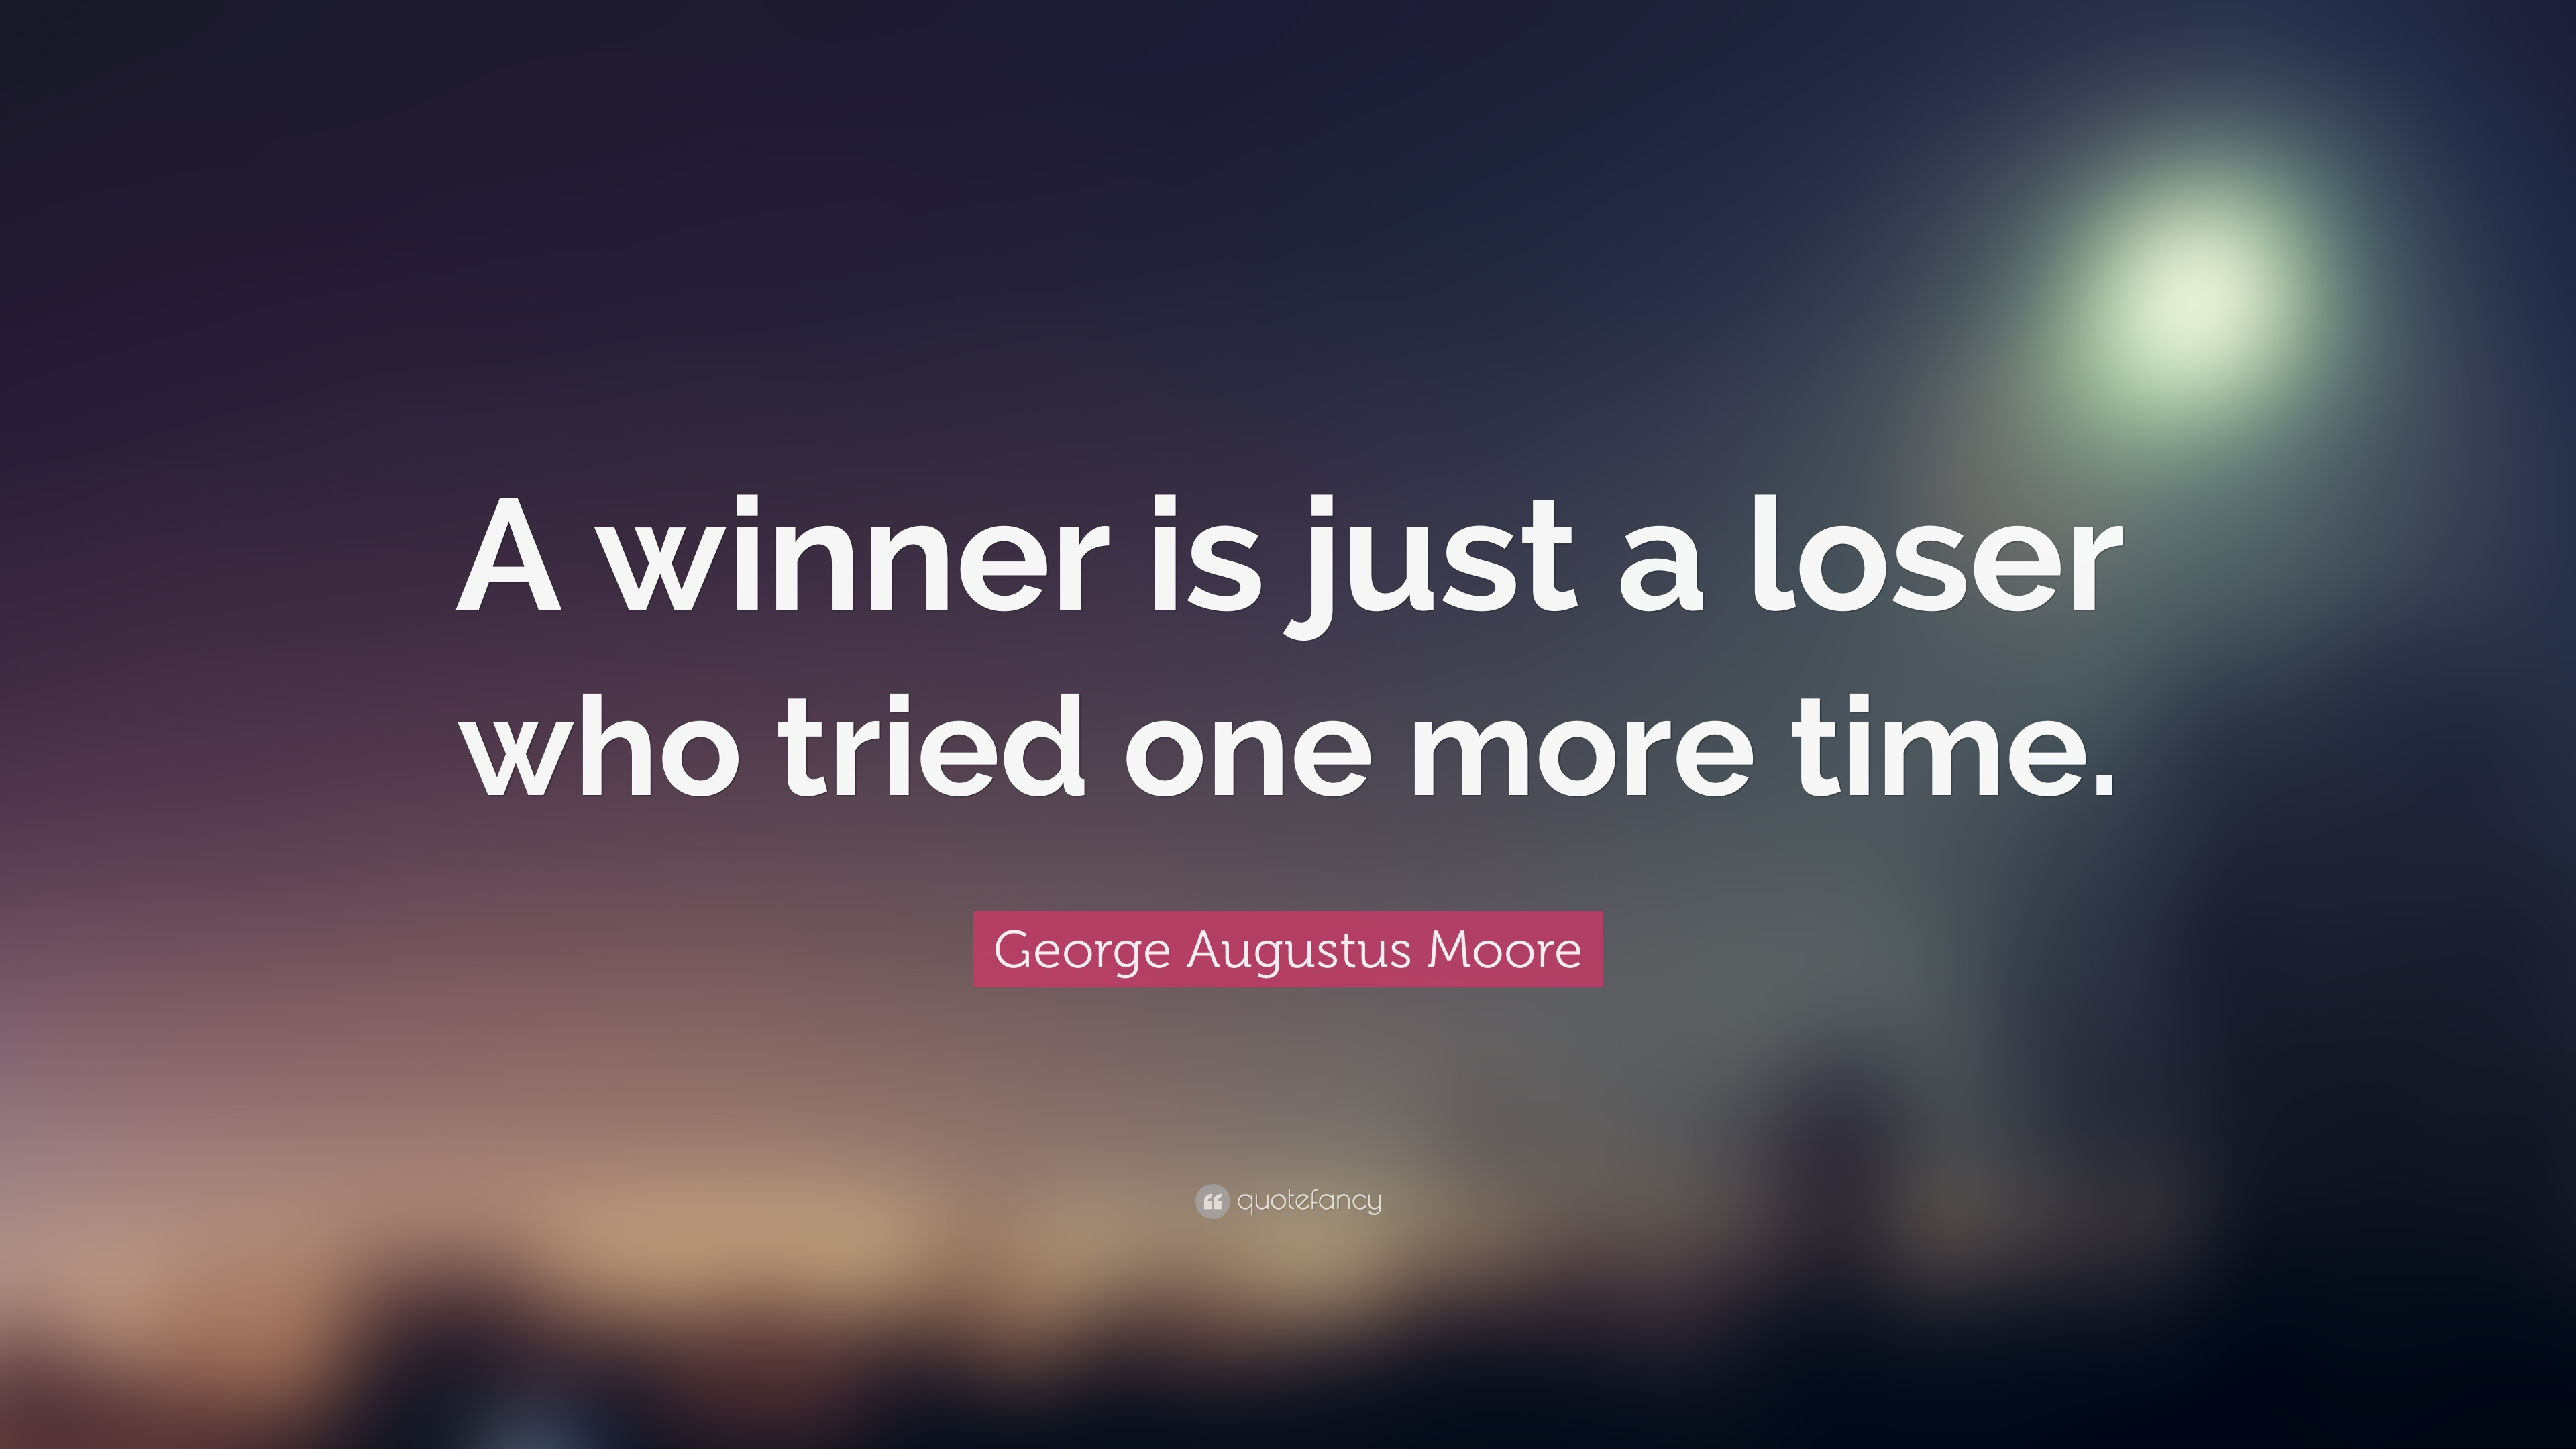 George Augustus Moore Quote A Winner Is Just A Loser Who Tried One More Time 20 Wallpapers